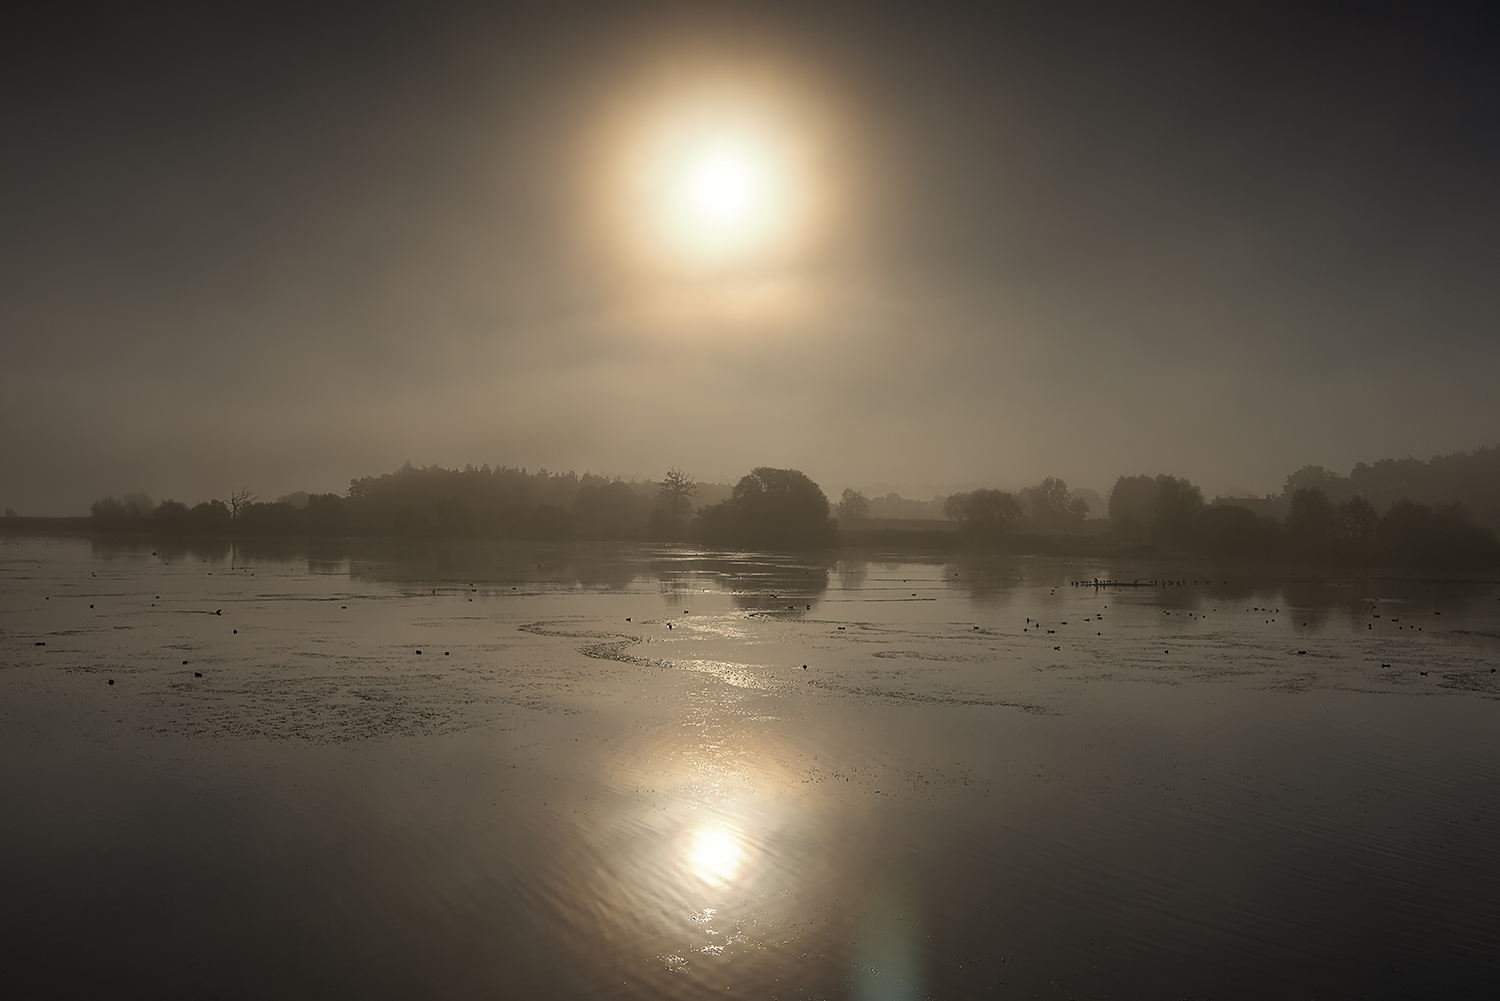 Sunrise with the mist lifting at Chew Valley Lake